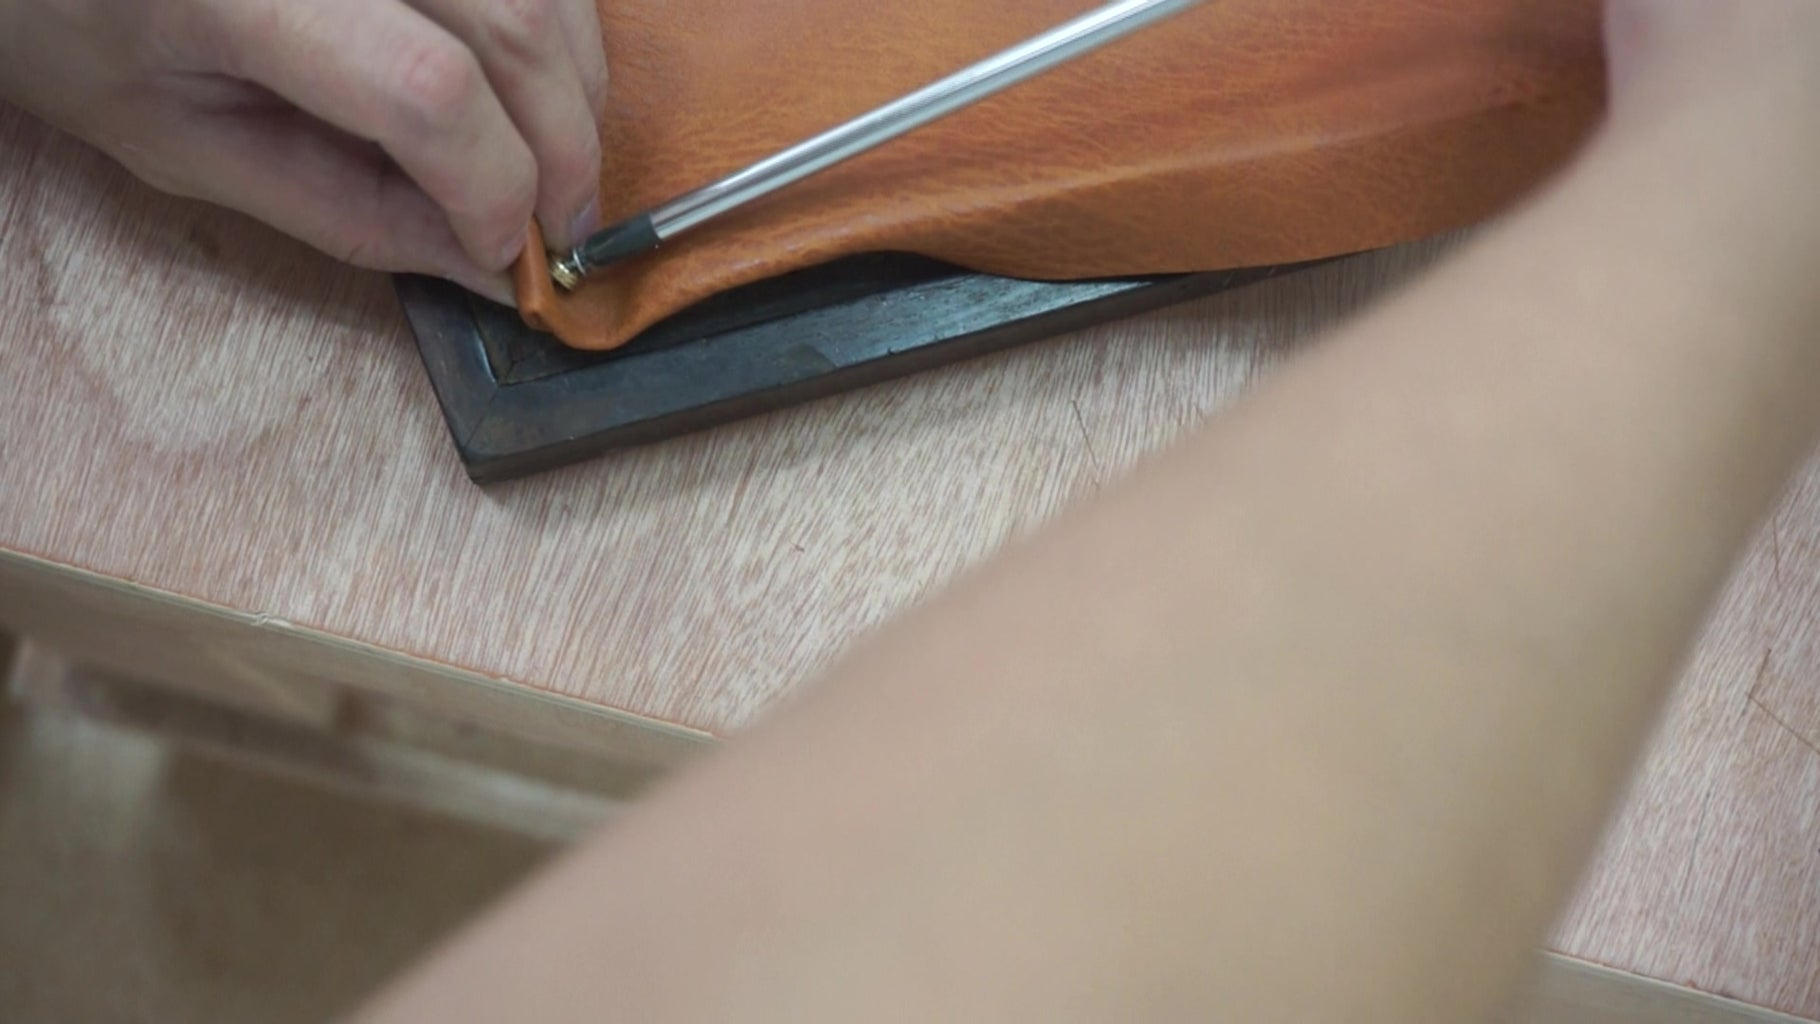 Cutting the Leather and Infill Foam